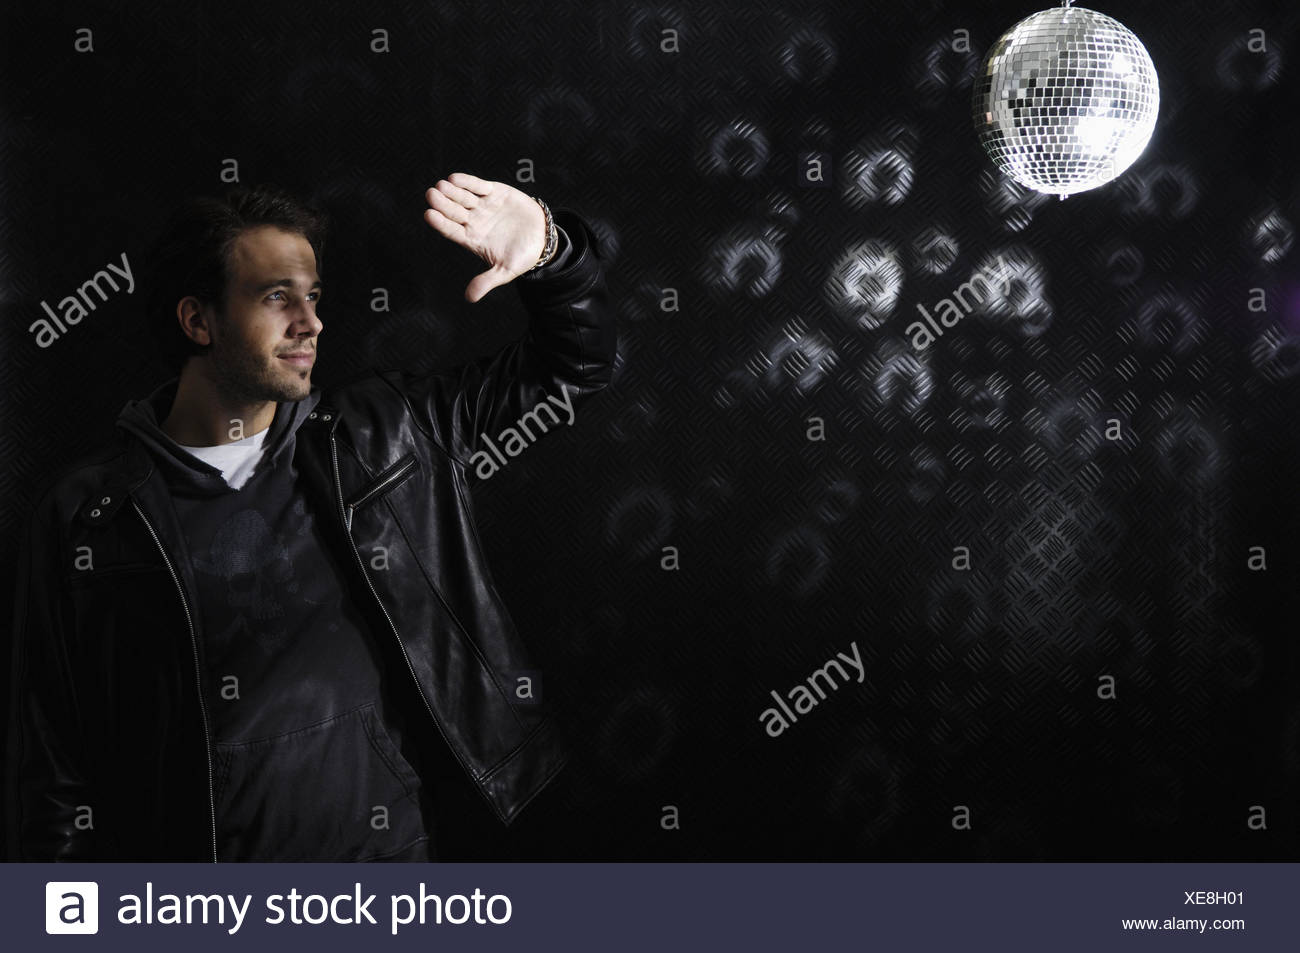 Disco, inside, disco sphere, man, young, gesture, glare, people, unshaven, 3-days beard, dark-haired, party, hand, protection, blanket, faded out, light, fiercely, shine, tin wall, light reflexions, - Stock Image